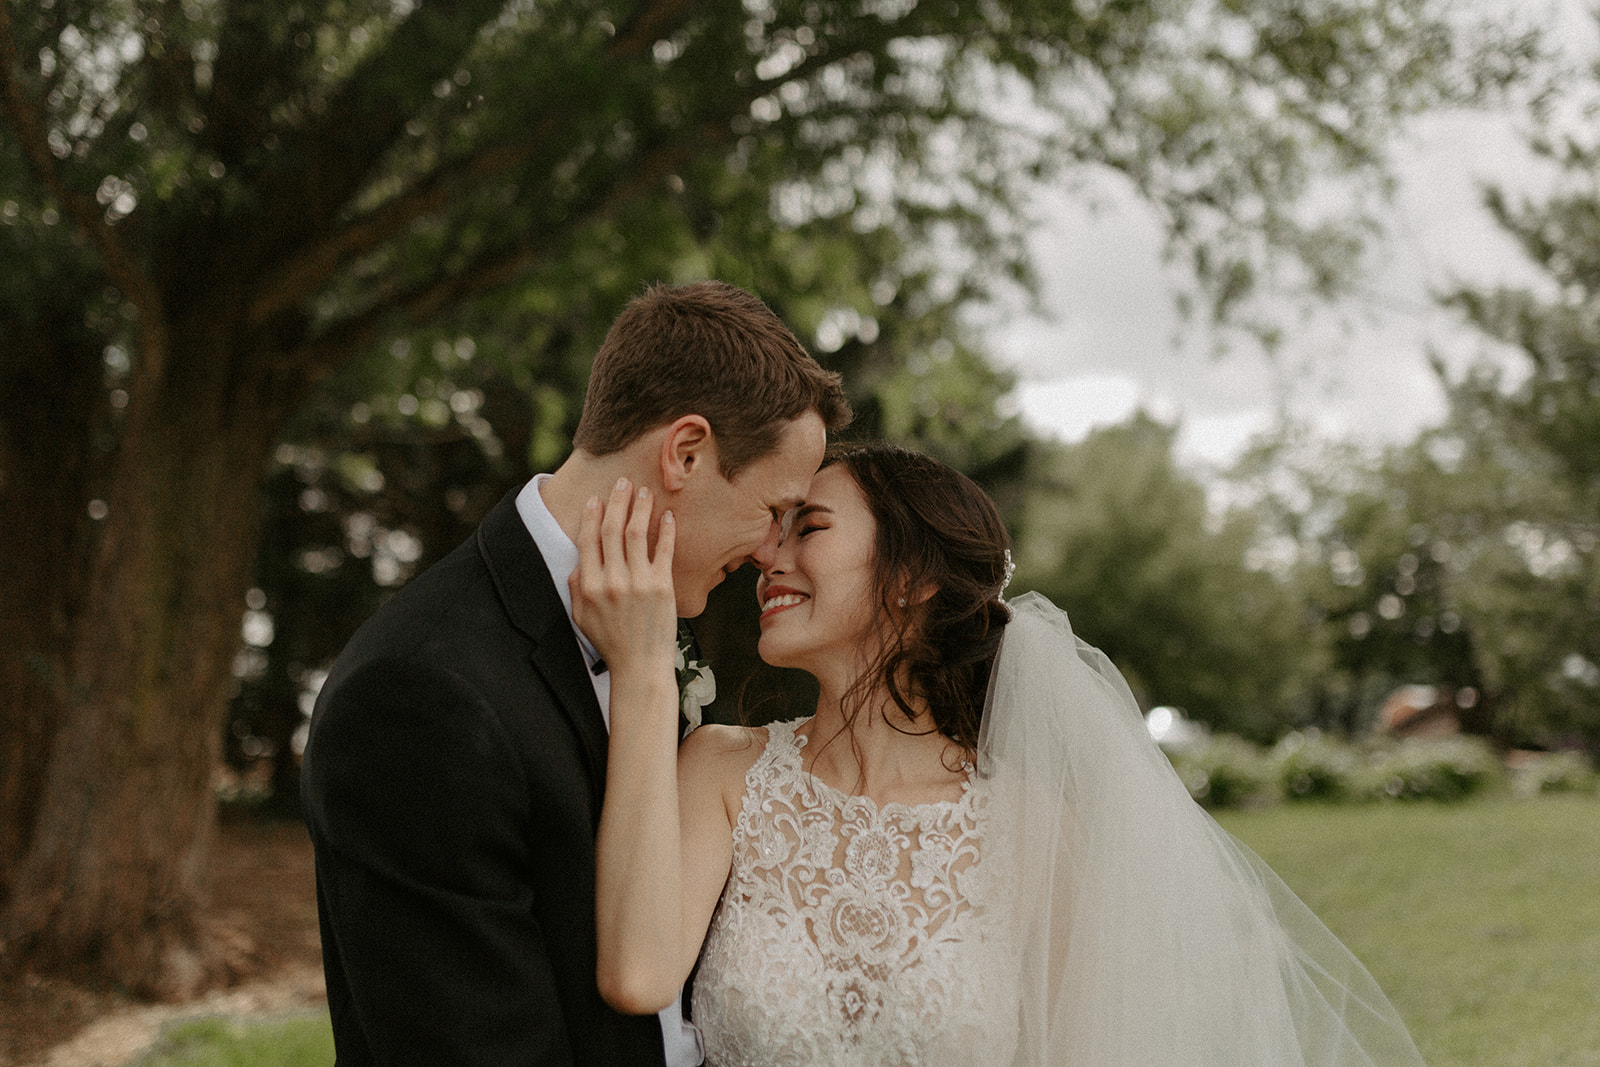 pear_tree_estate_wedding_photographer_champaign_chicago_illinois_midwest_wright_photographs_0494.jpg